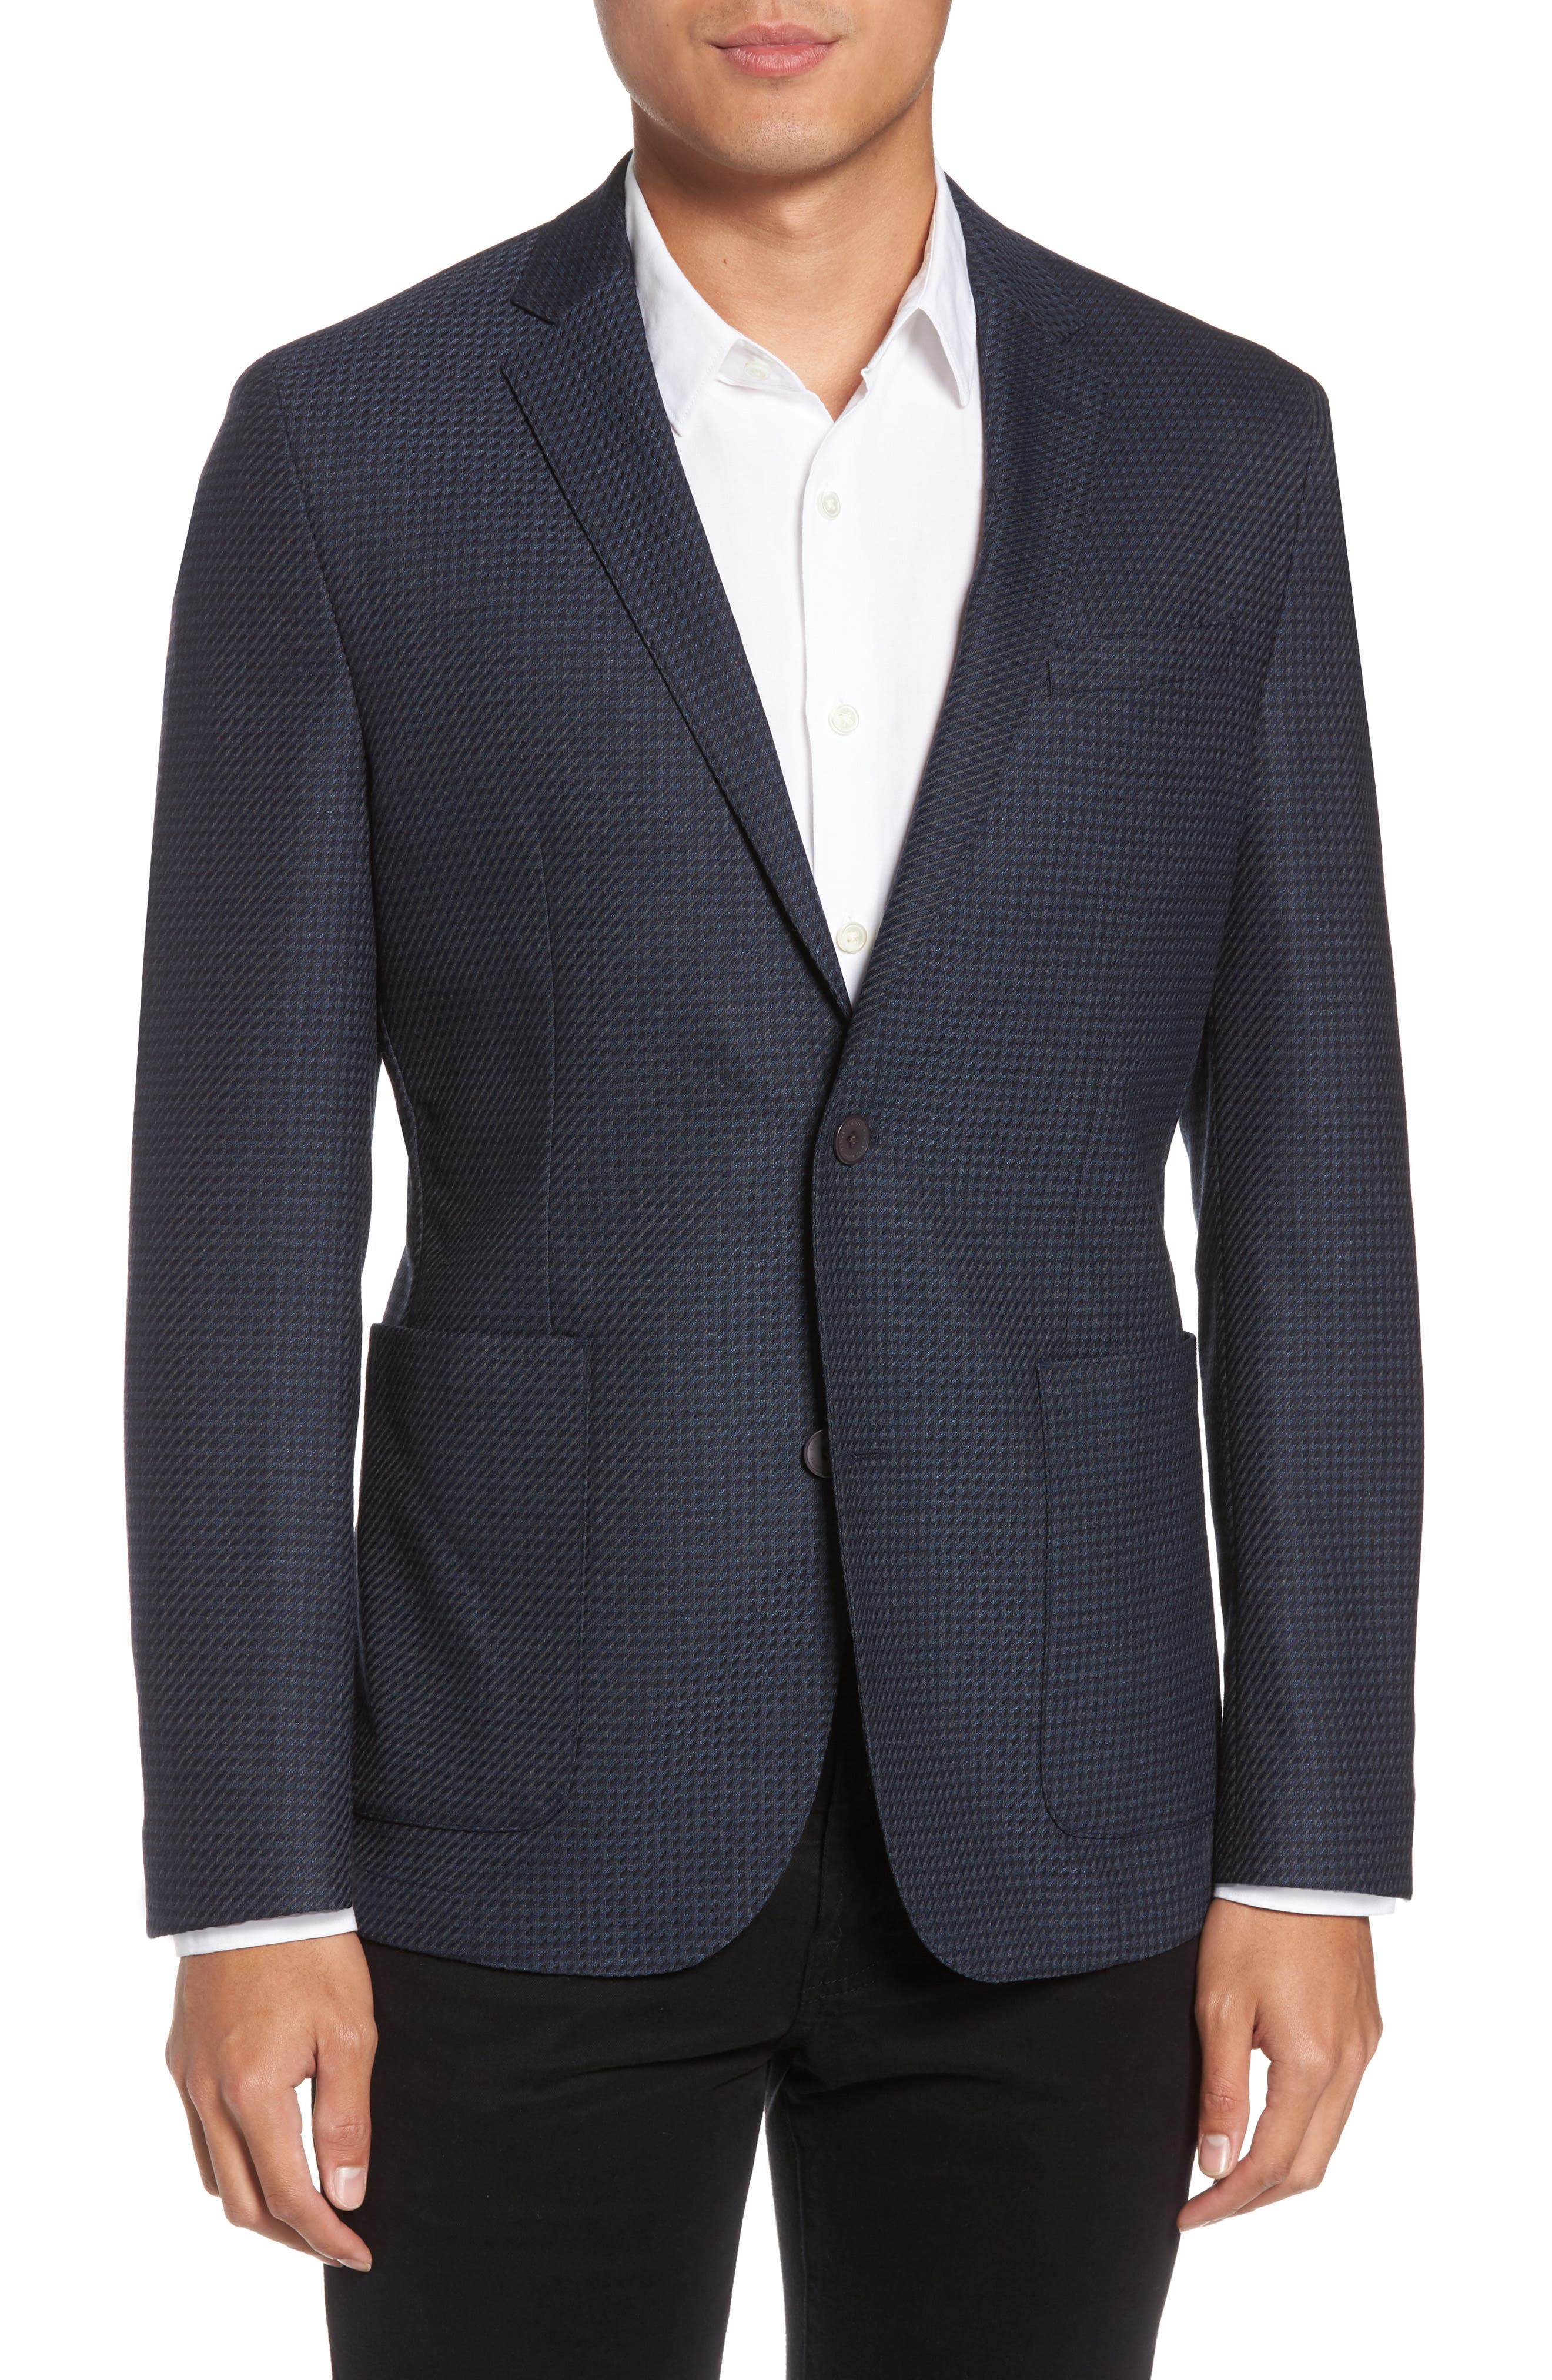 Digital Houndstooth Wool Blend Sport Coat,                             Main thumbnail 1, color,                             410